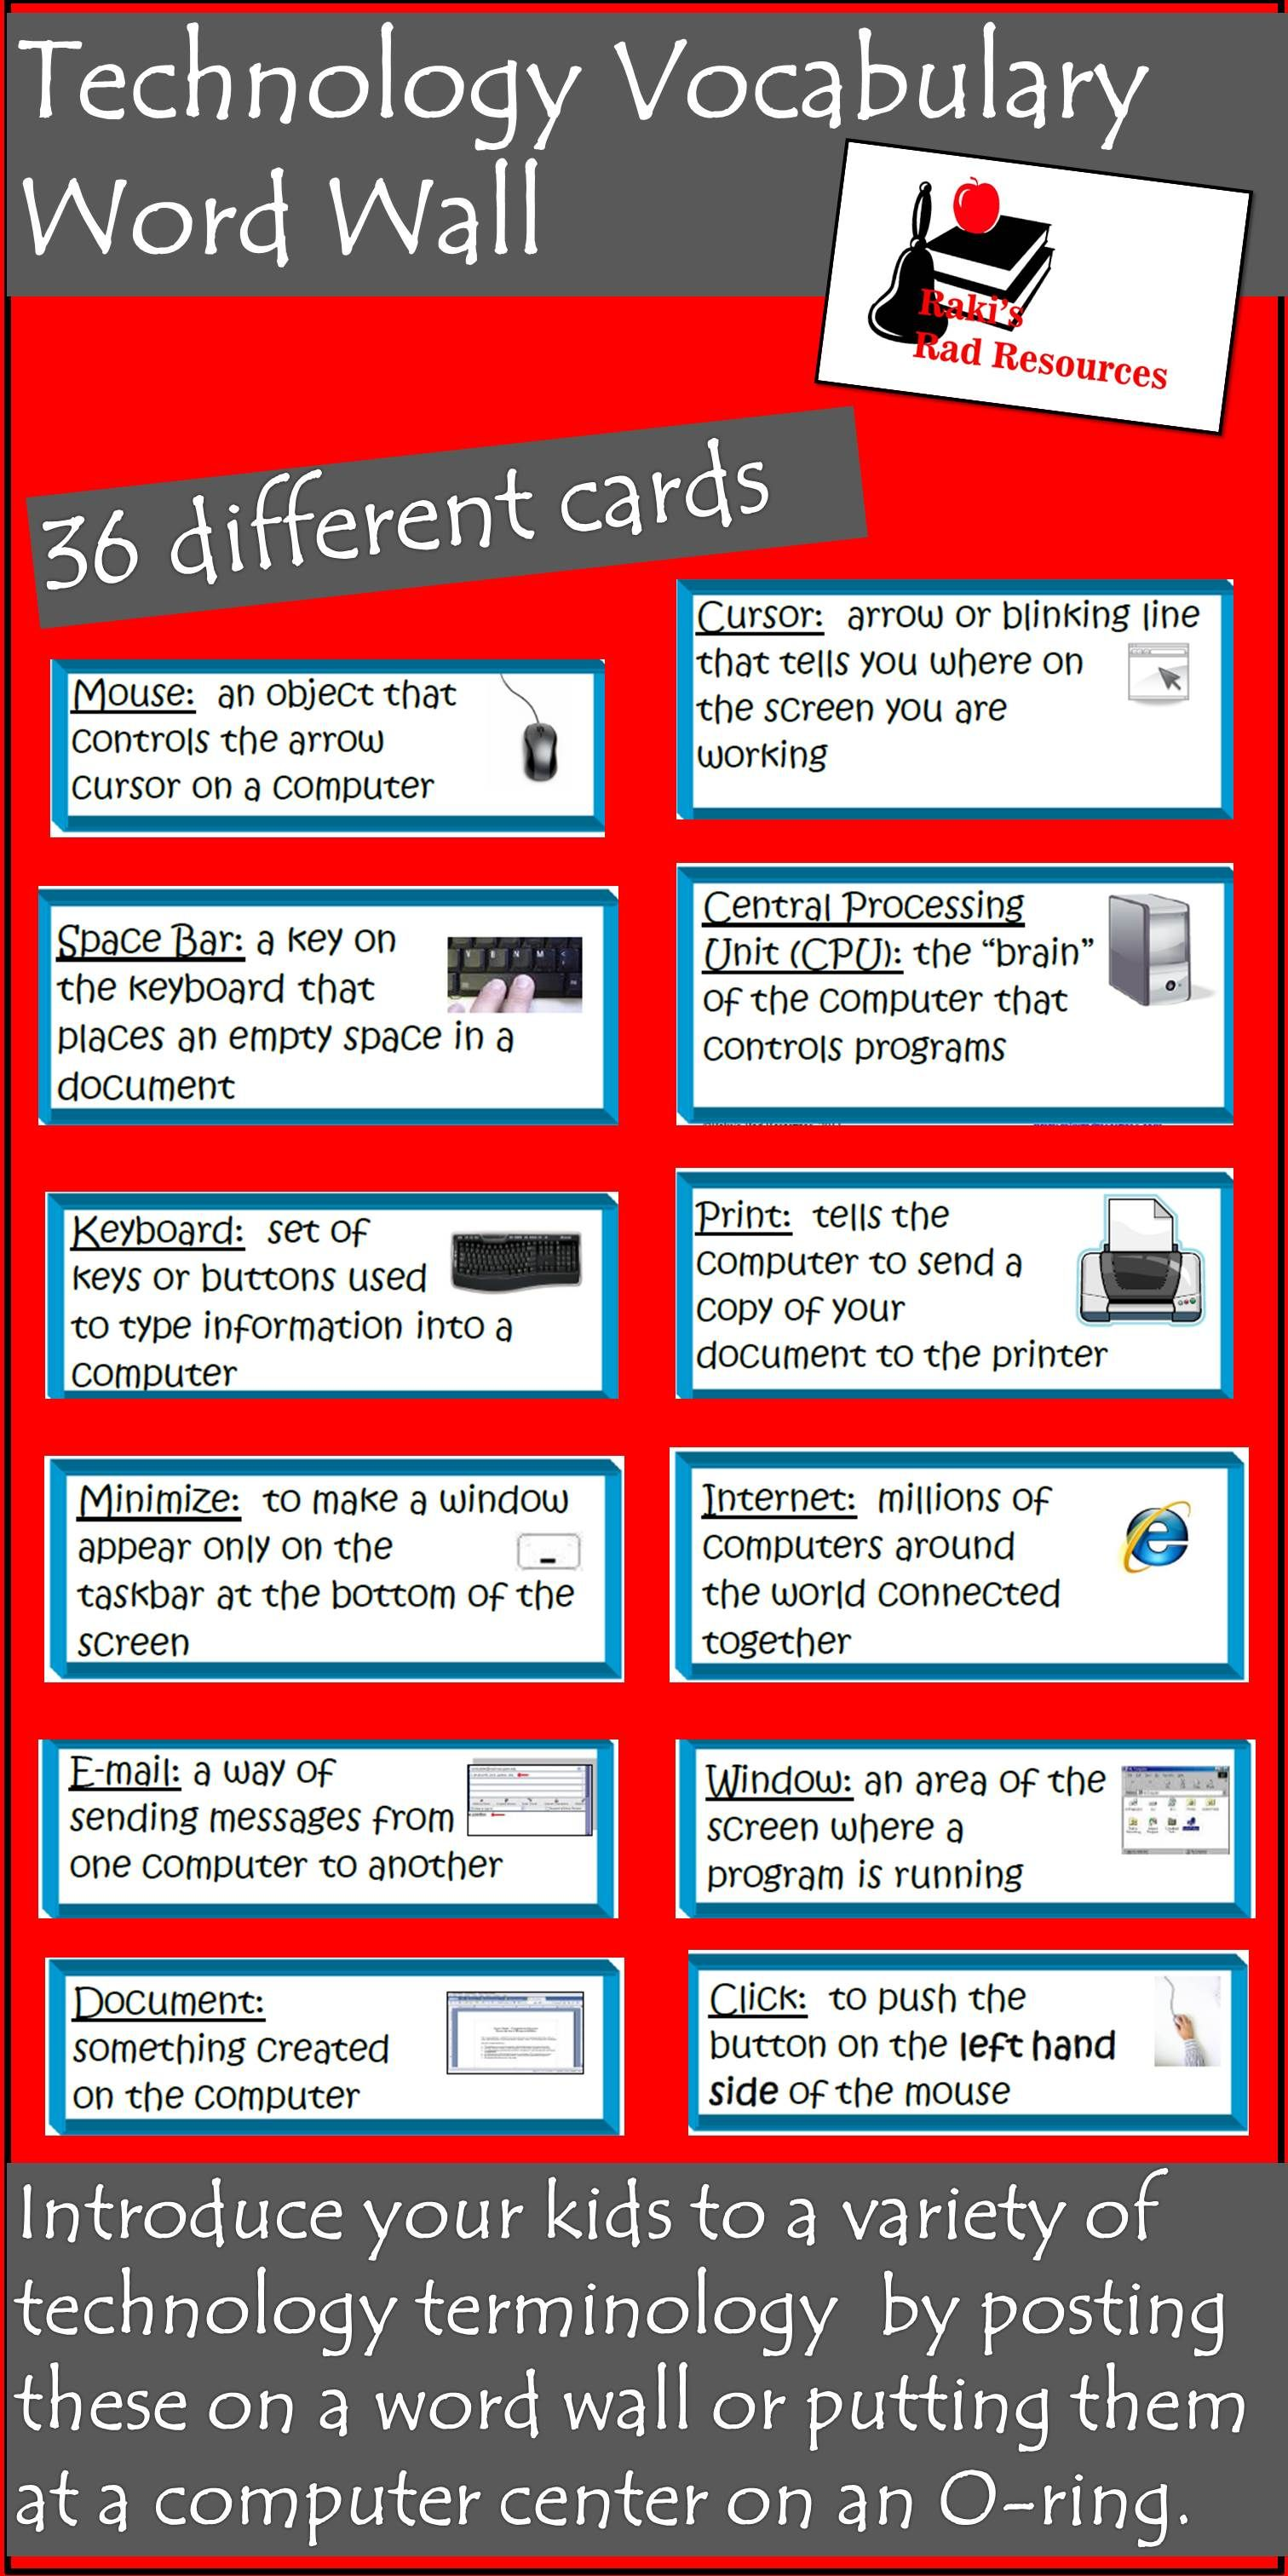 Technology Vocabulary Cards With Images Technology Vocabulary